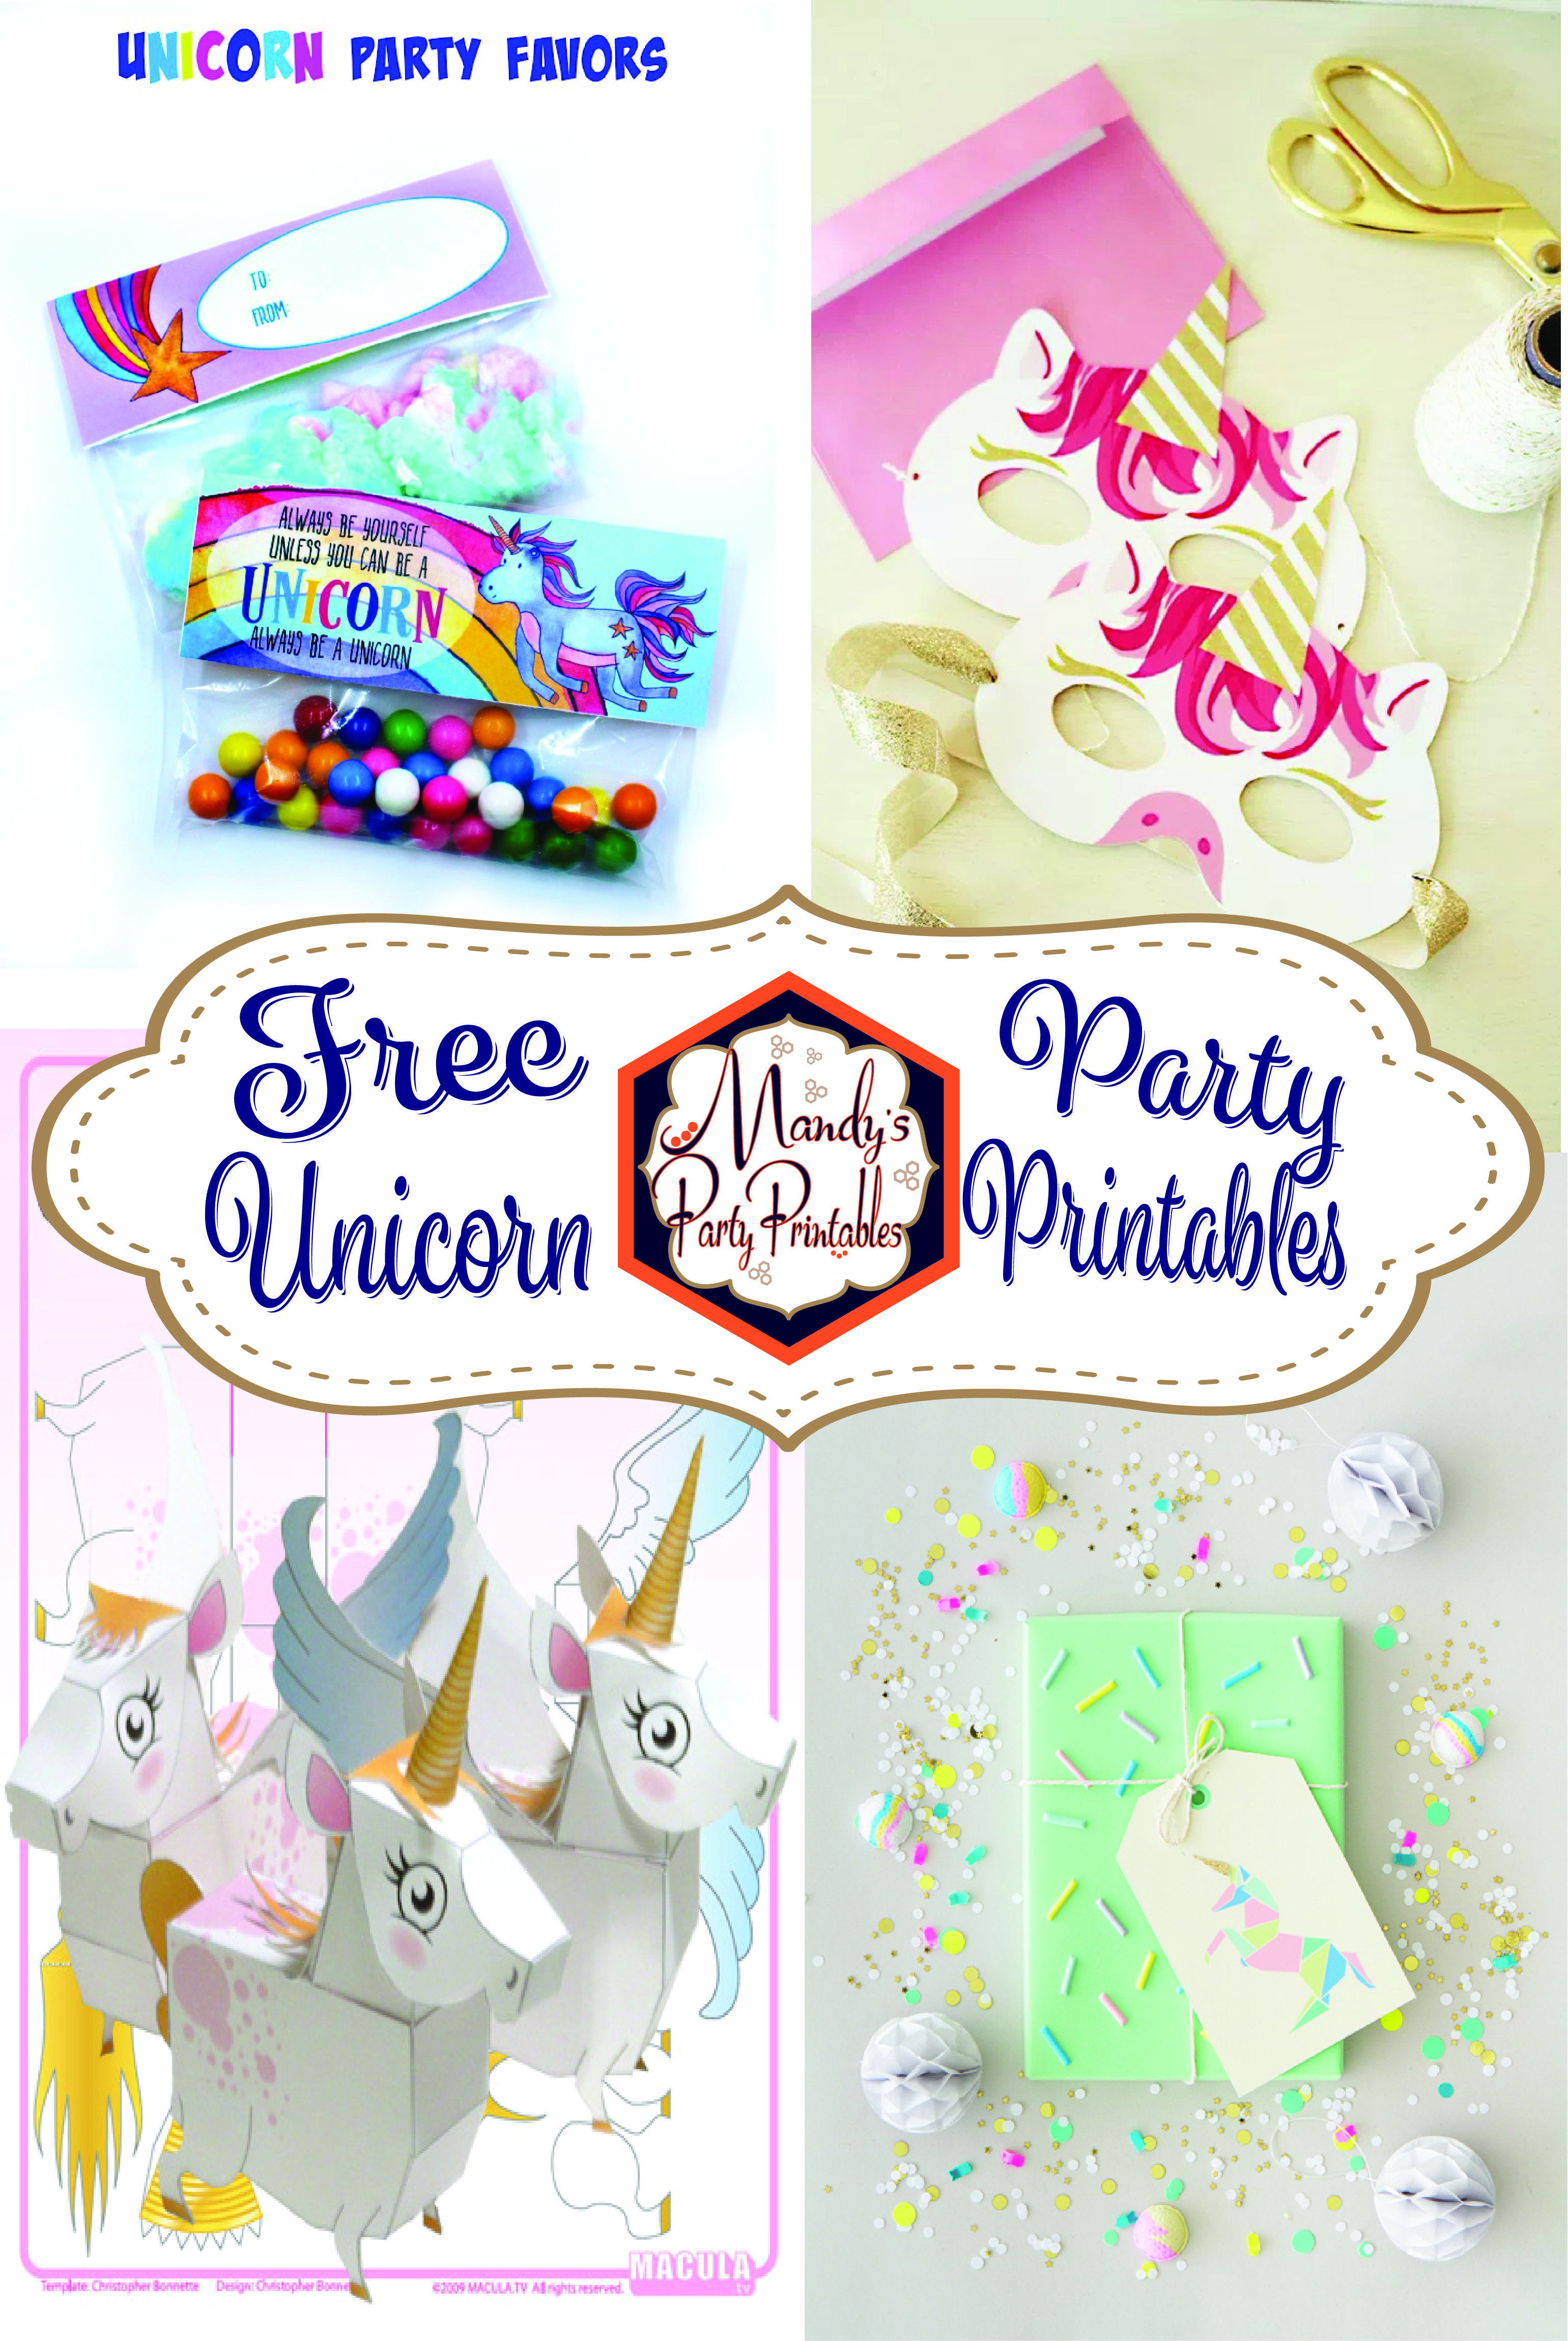 Don t miss out on these FREE unicorn party printables from Mandy s Party Printables Selber MachenParty DruckbaresKostenlose DruckvorlagenRegenbogen Einhorn